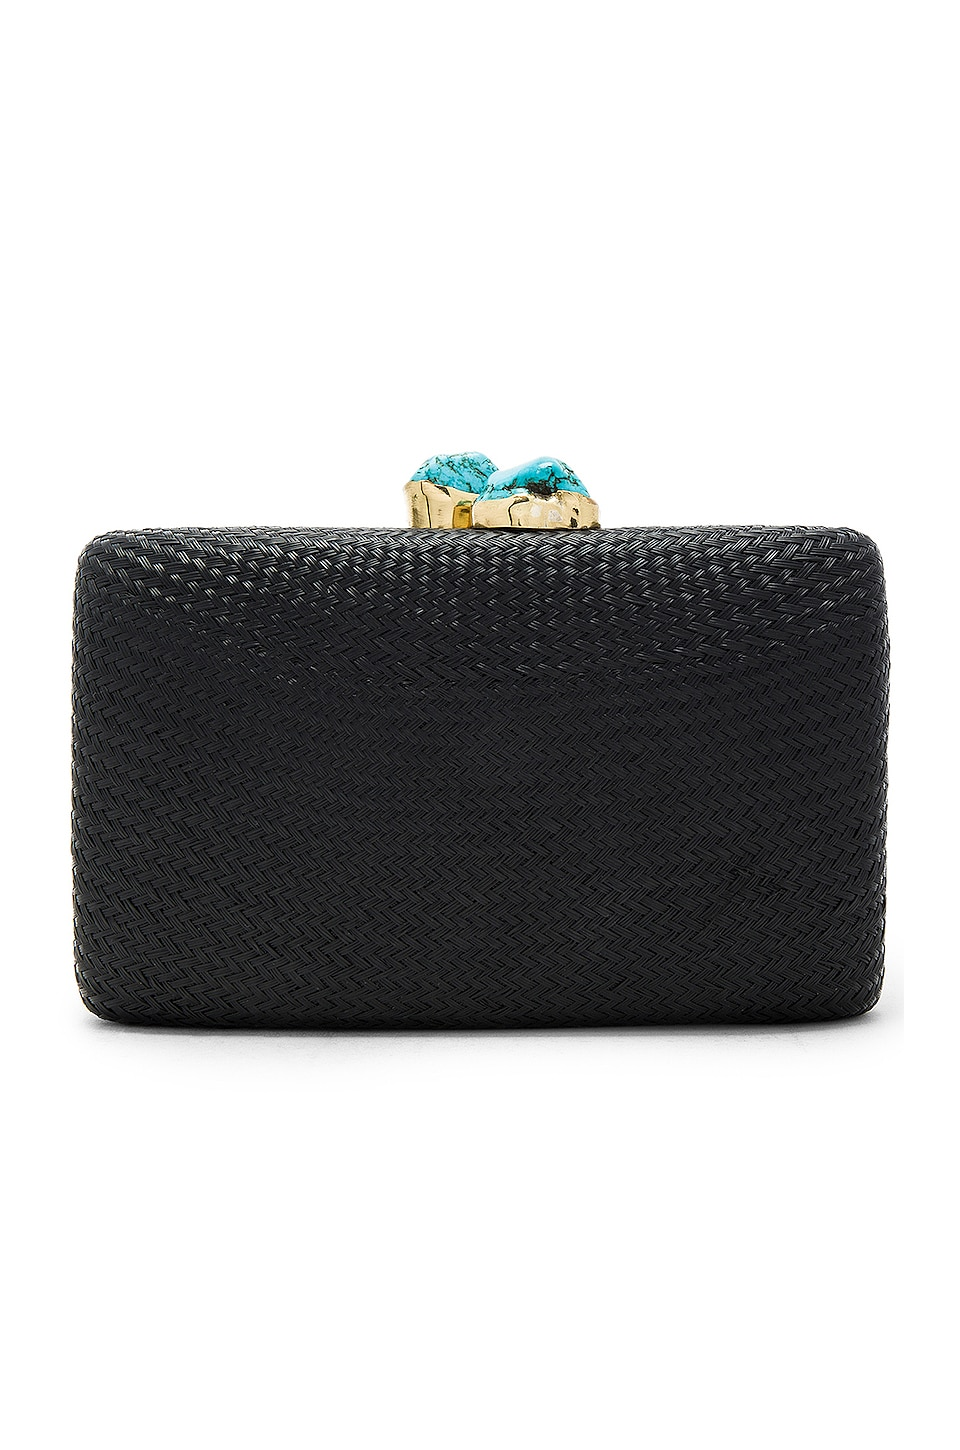 KAYU Jen Clutch in Black & Turquoise